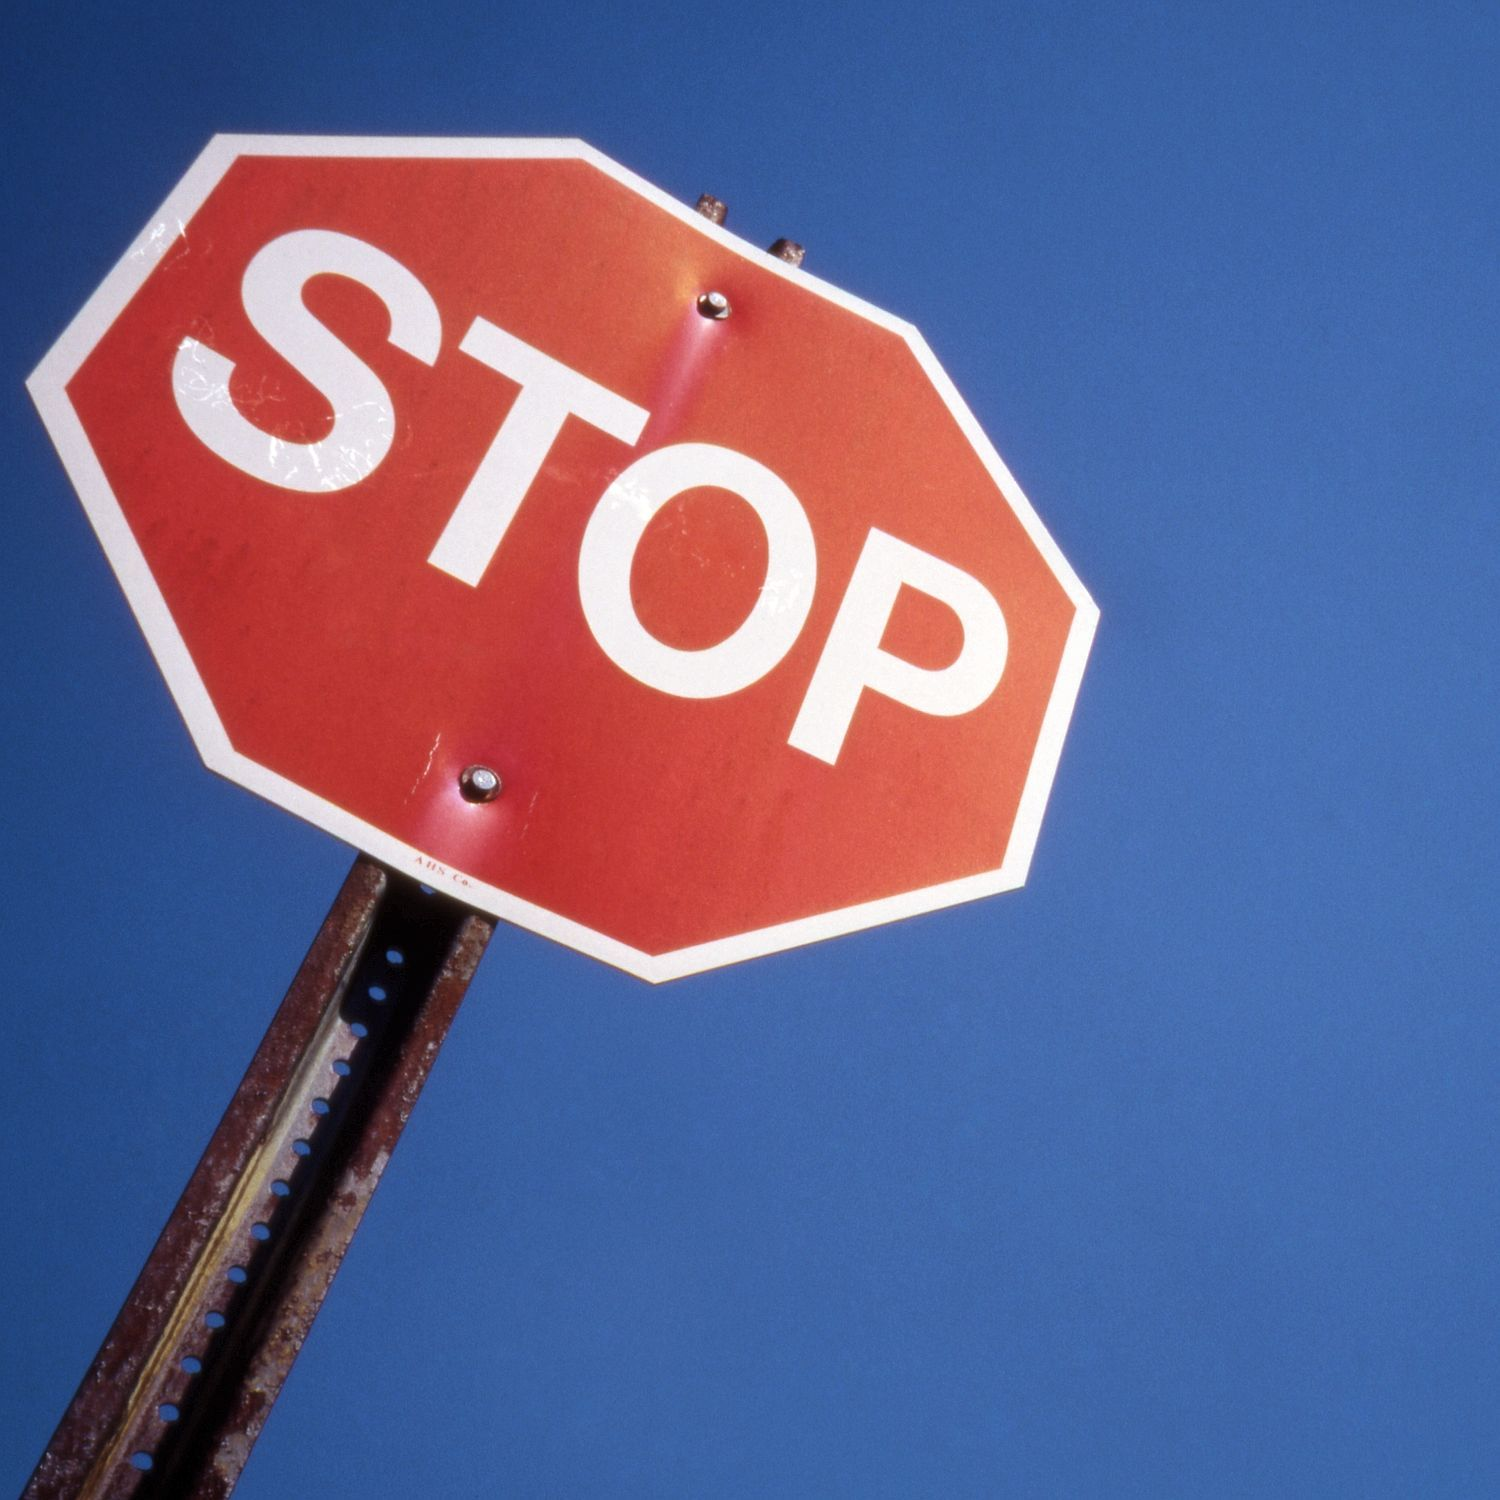 Dirty stop sign photo